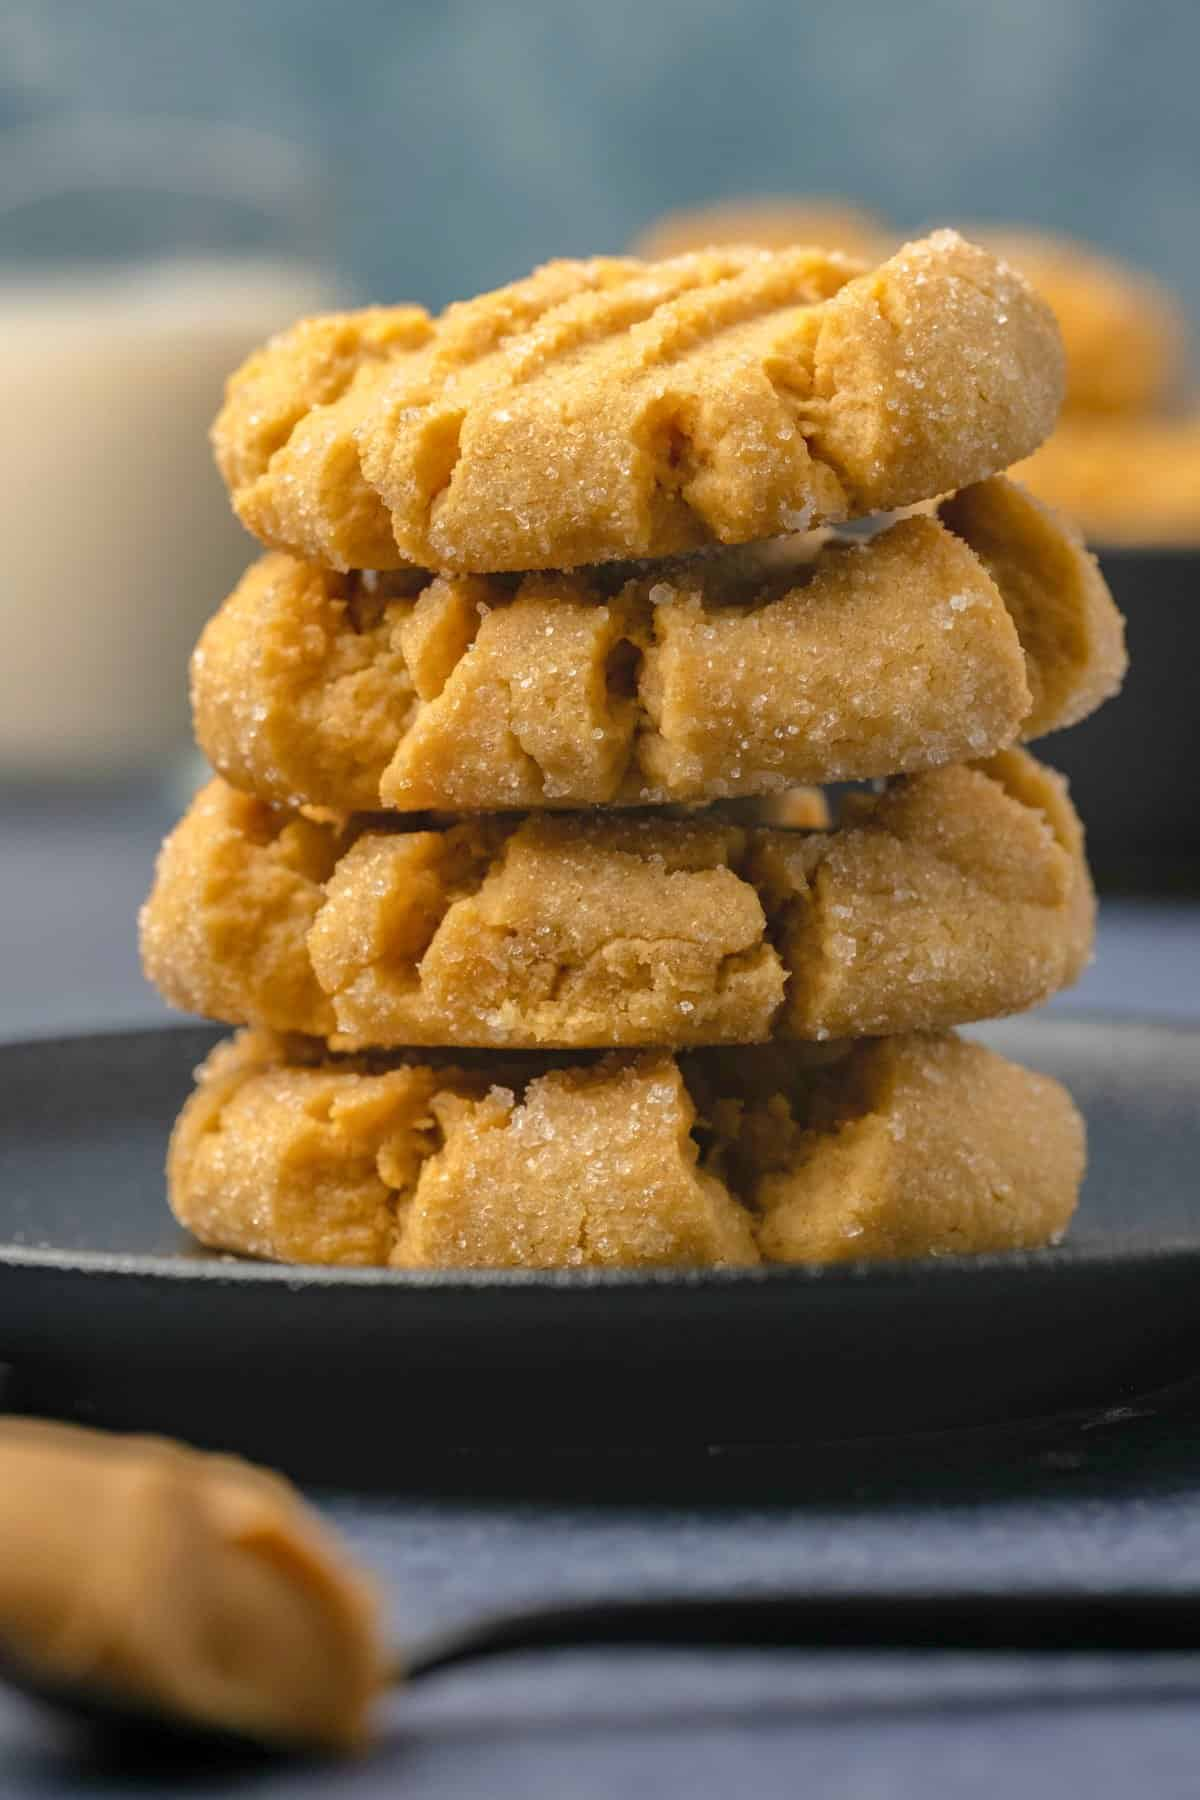 Peanut butter cookies stacked up on a black plate.